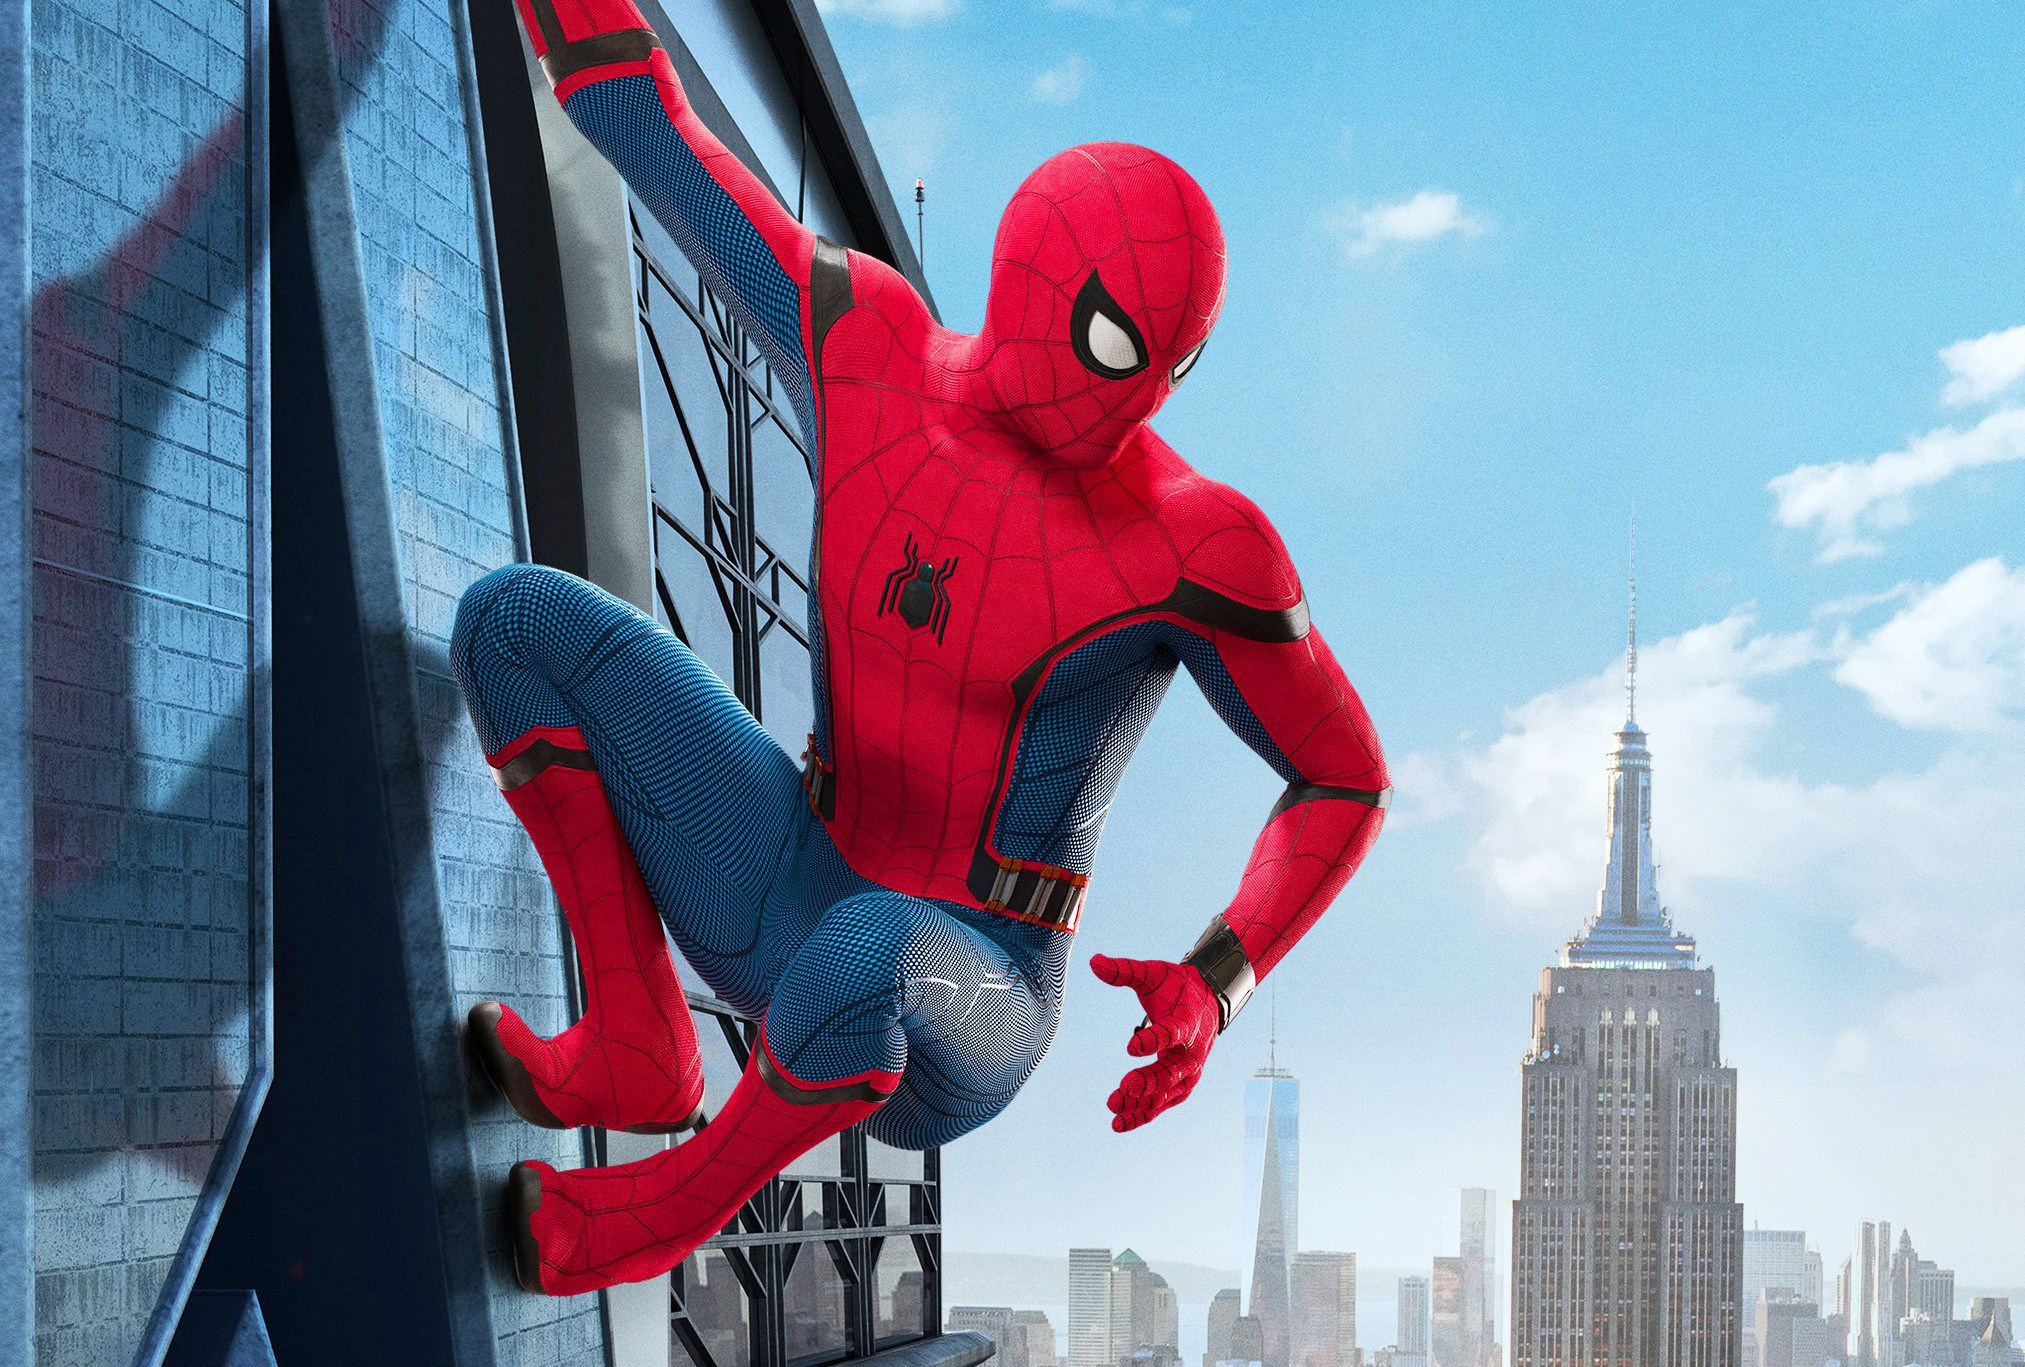 69 Spiderman Homecoming Wallpaper On Wallpapersafari